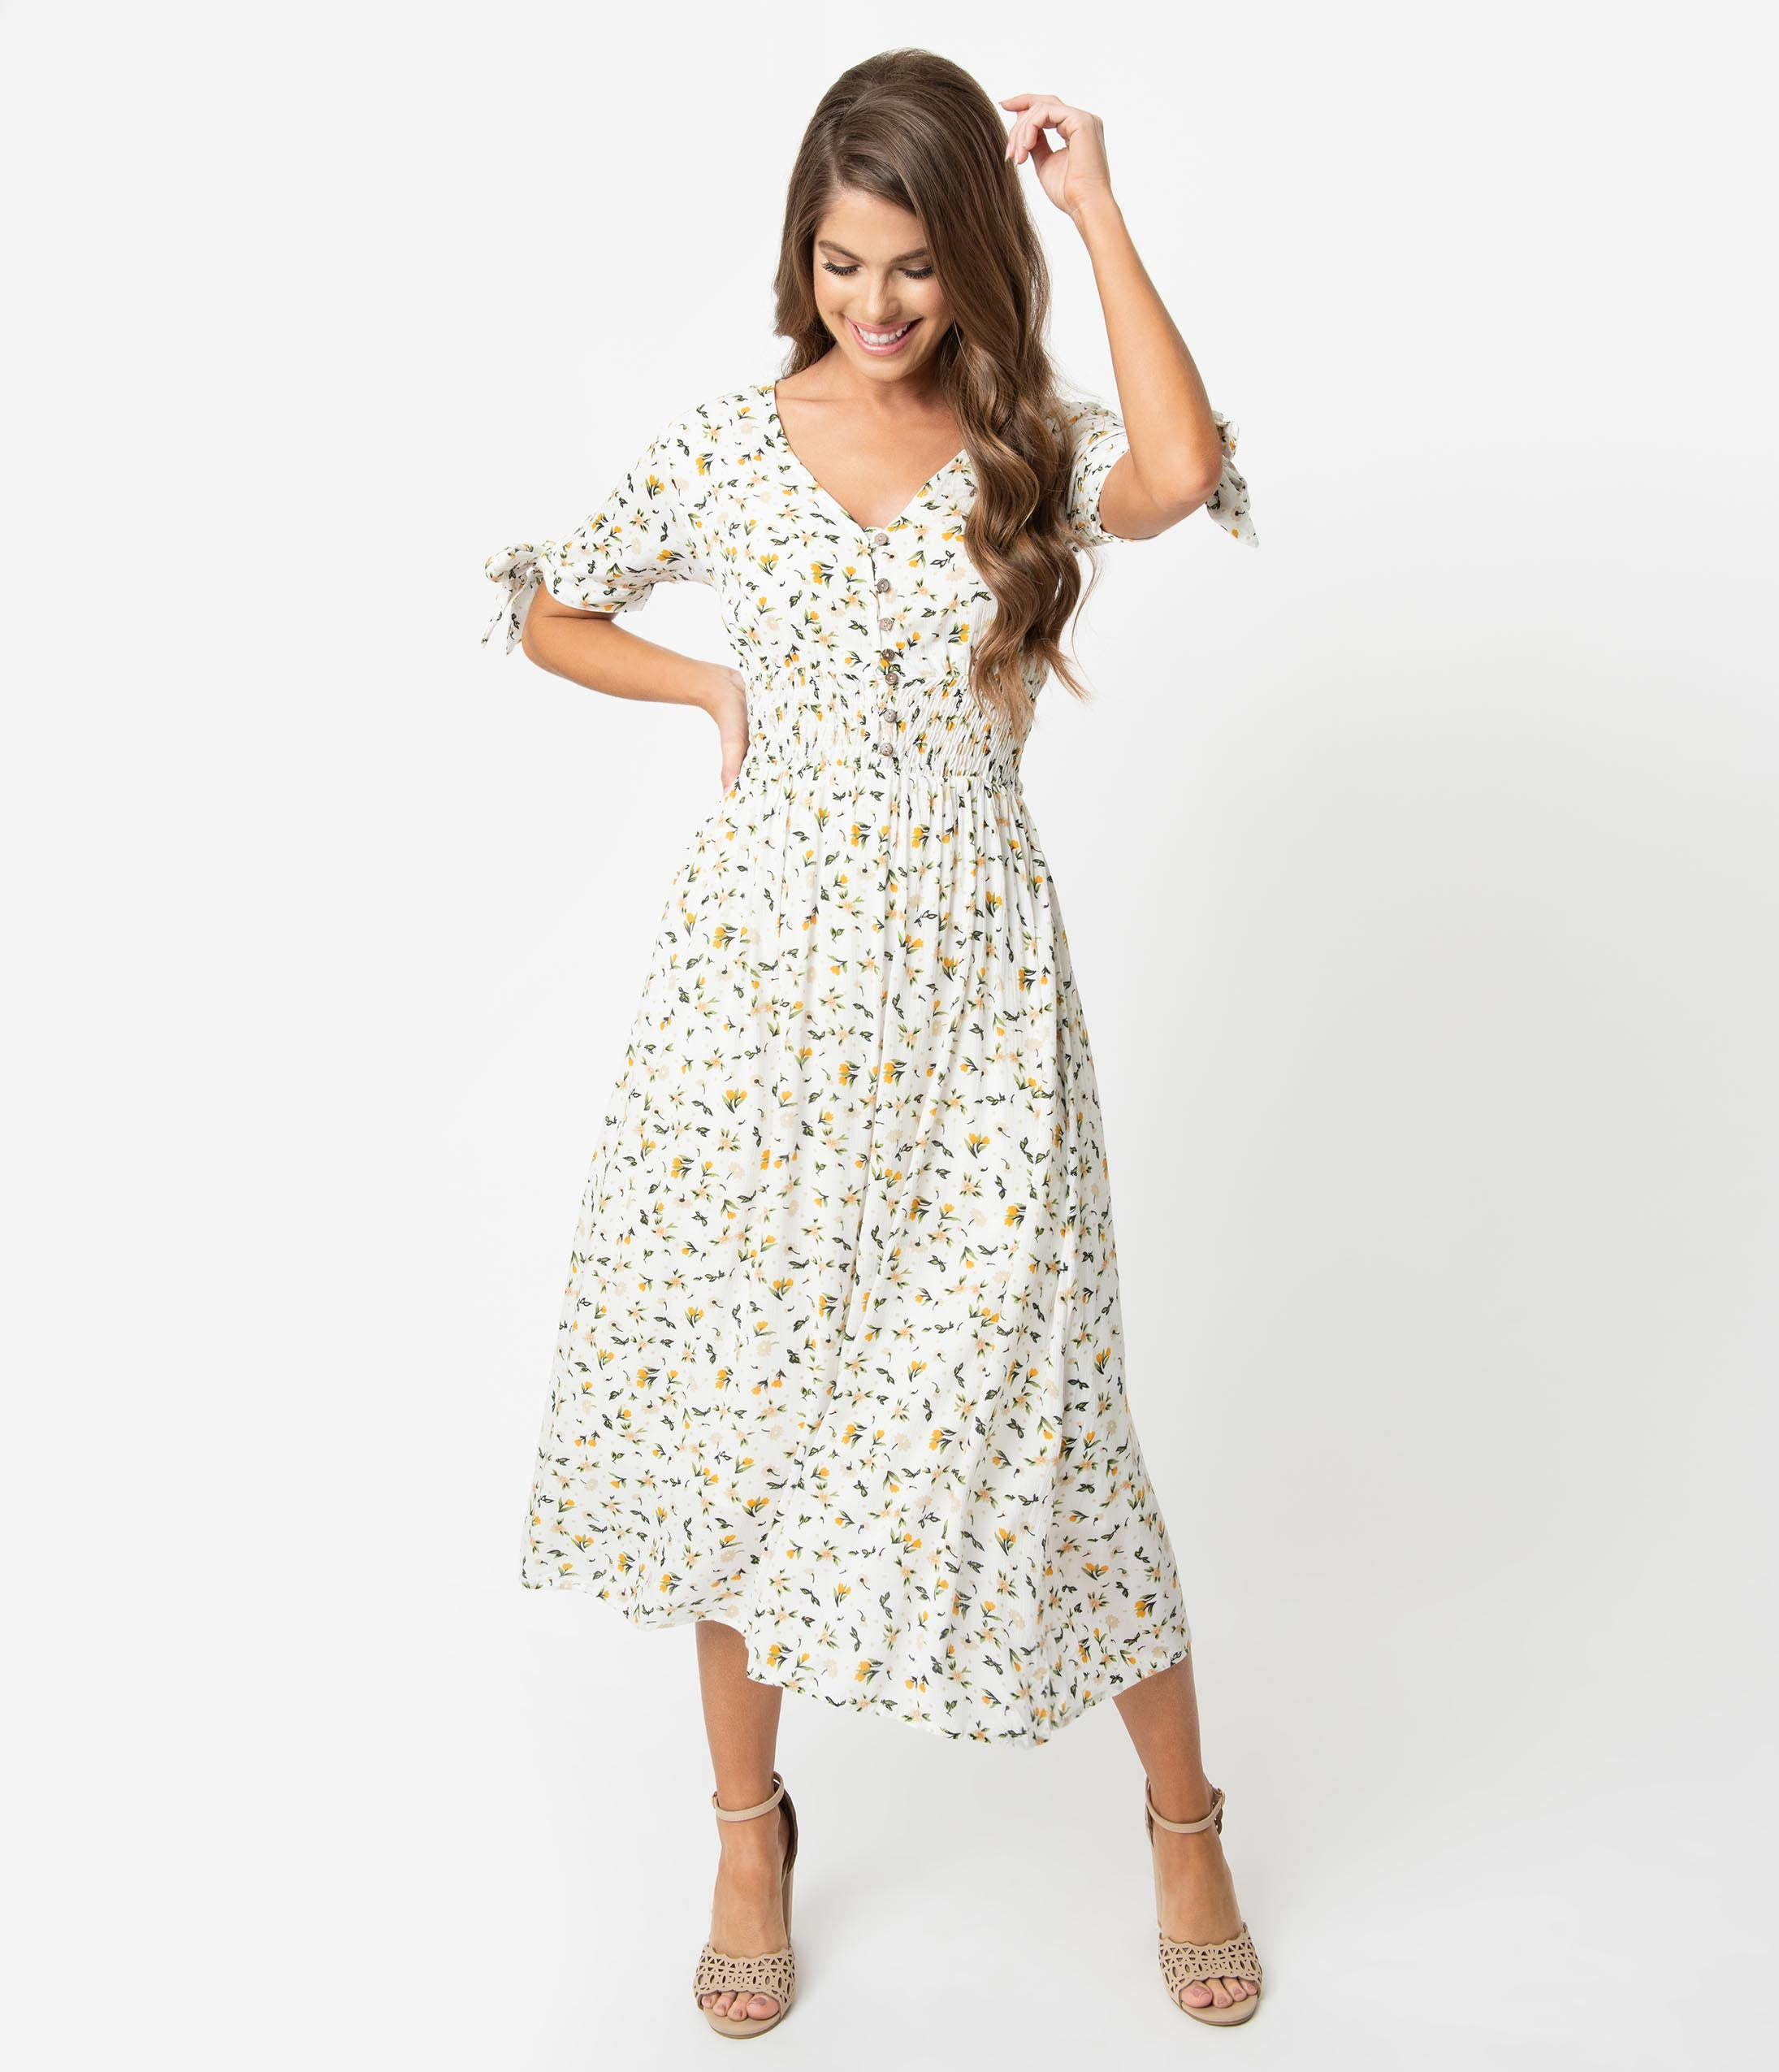 ef5f5f9d14 1970s Style Ivory & Yellow Delicate Floral Print Short Sleeve Midi Dress